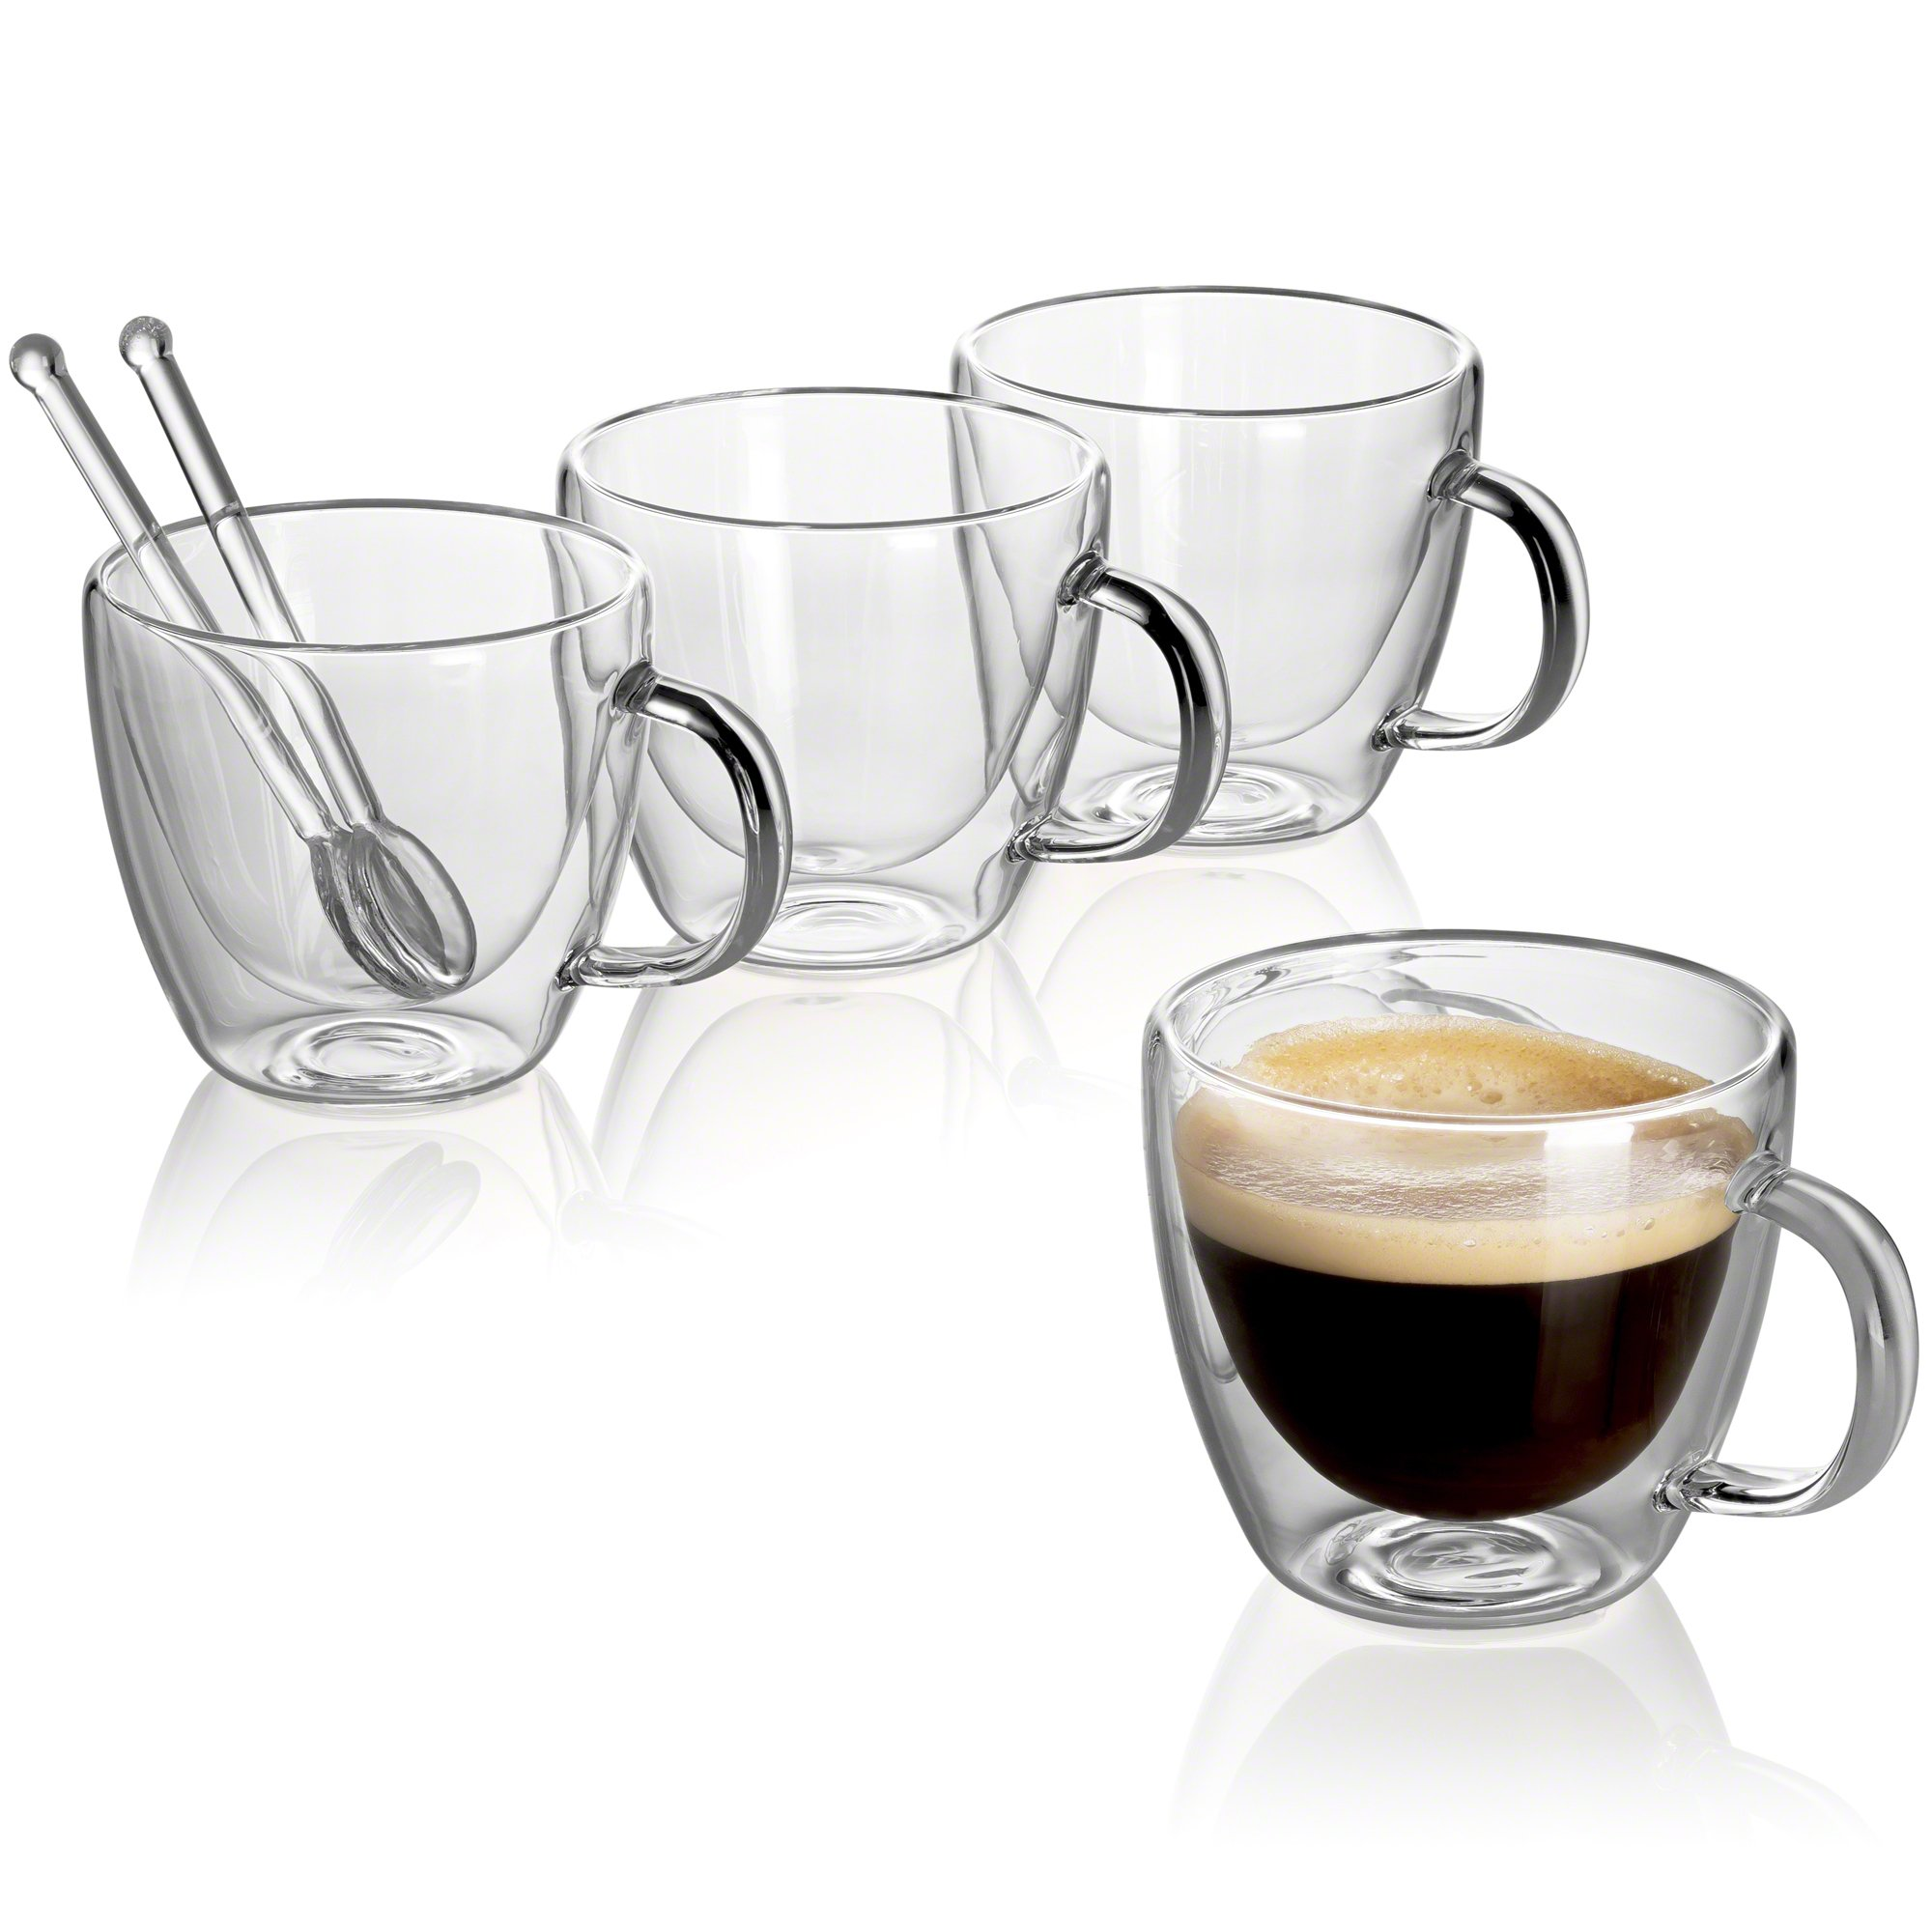 Jecobi(R) Cafecito Extra-Strong Double Wall Insulated glasses Espresso Mugs Set of 4, 5.2 OZ | 150ML plus 2 Mini Coffee Spoon (glass)